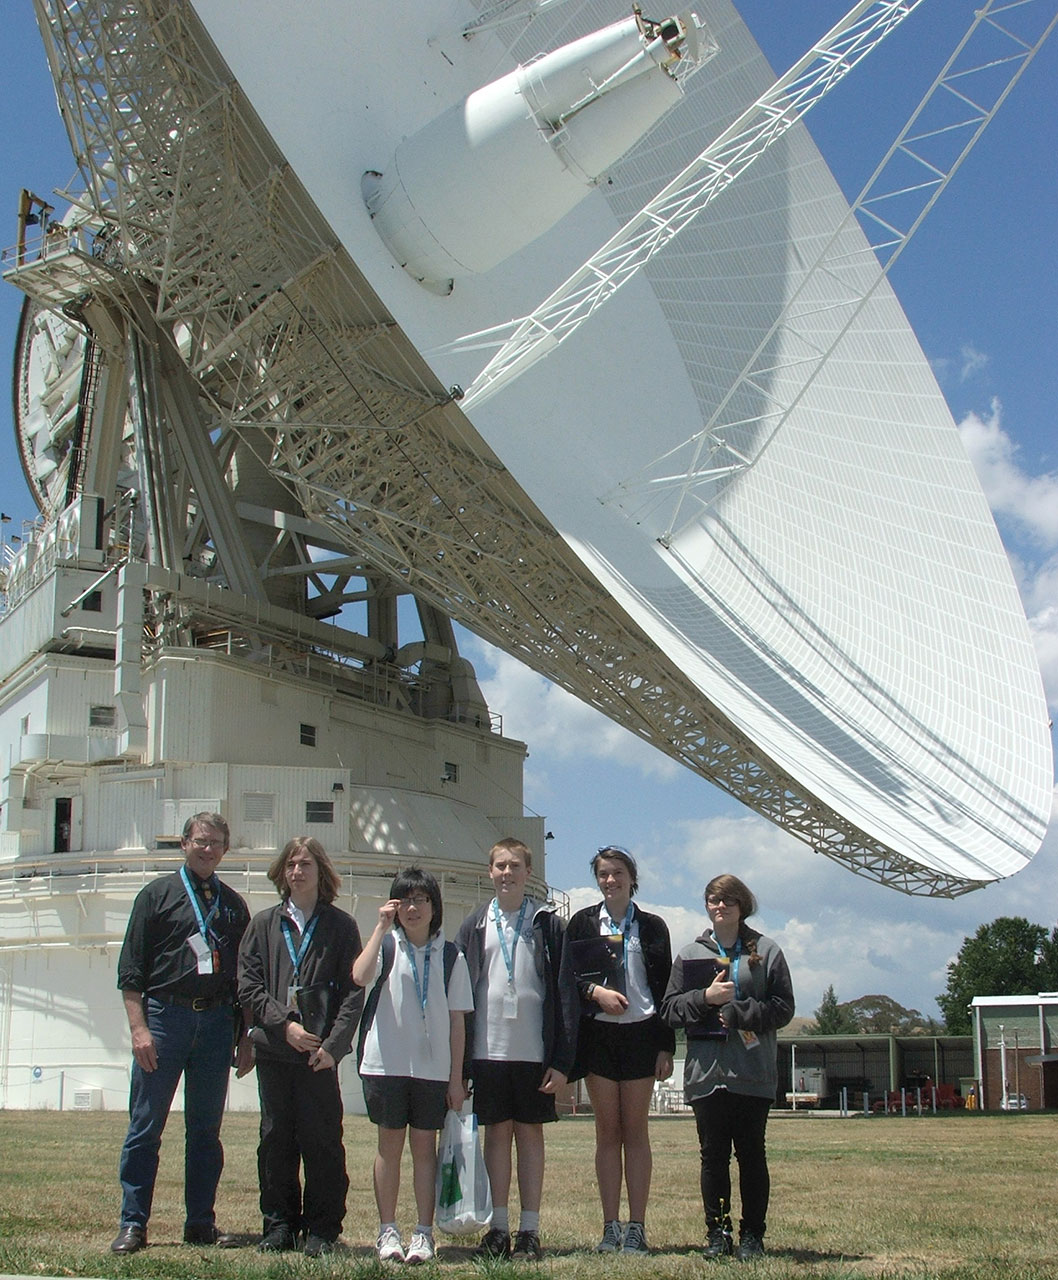 Students and their teacher from Melrose High School were ready to explore, posing in front of Deep Space Station 43 (70-metre antenan) at the CSIRO-NASA Canberra Deep Space Communication Complex.